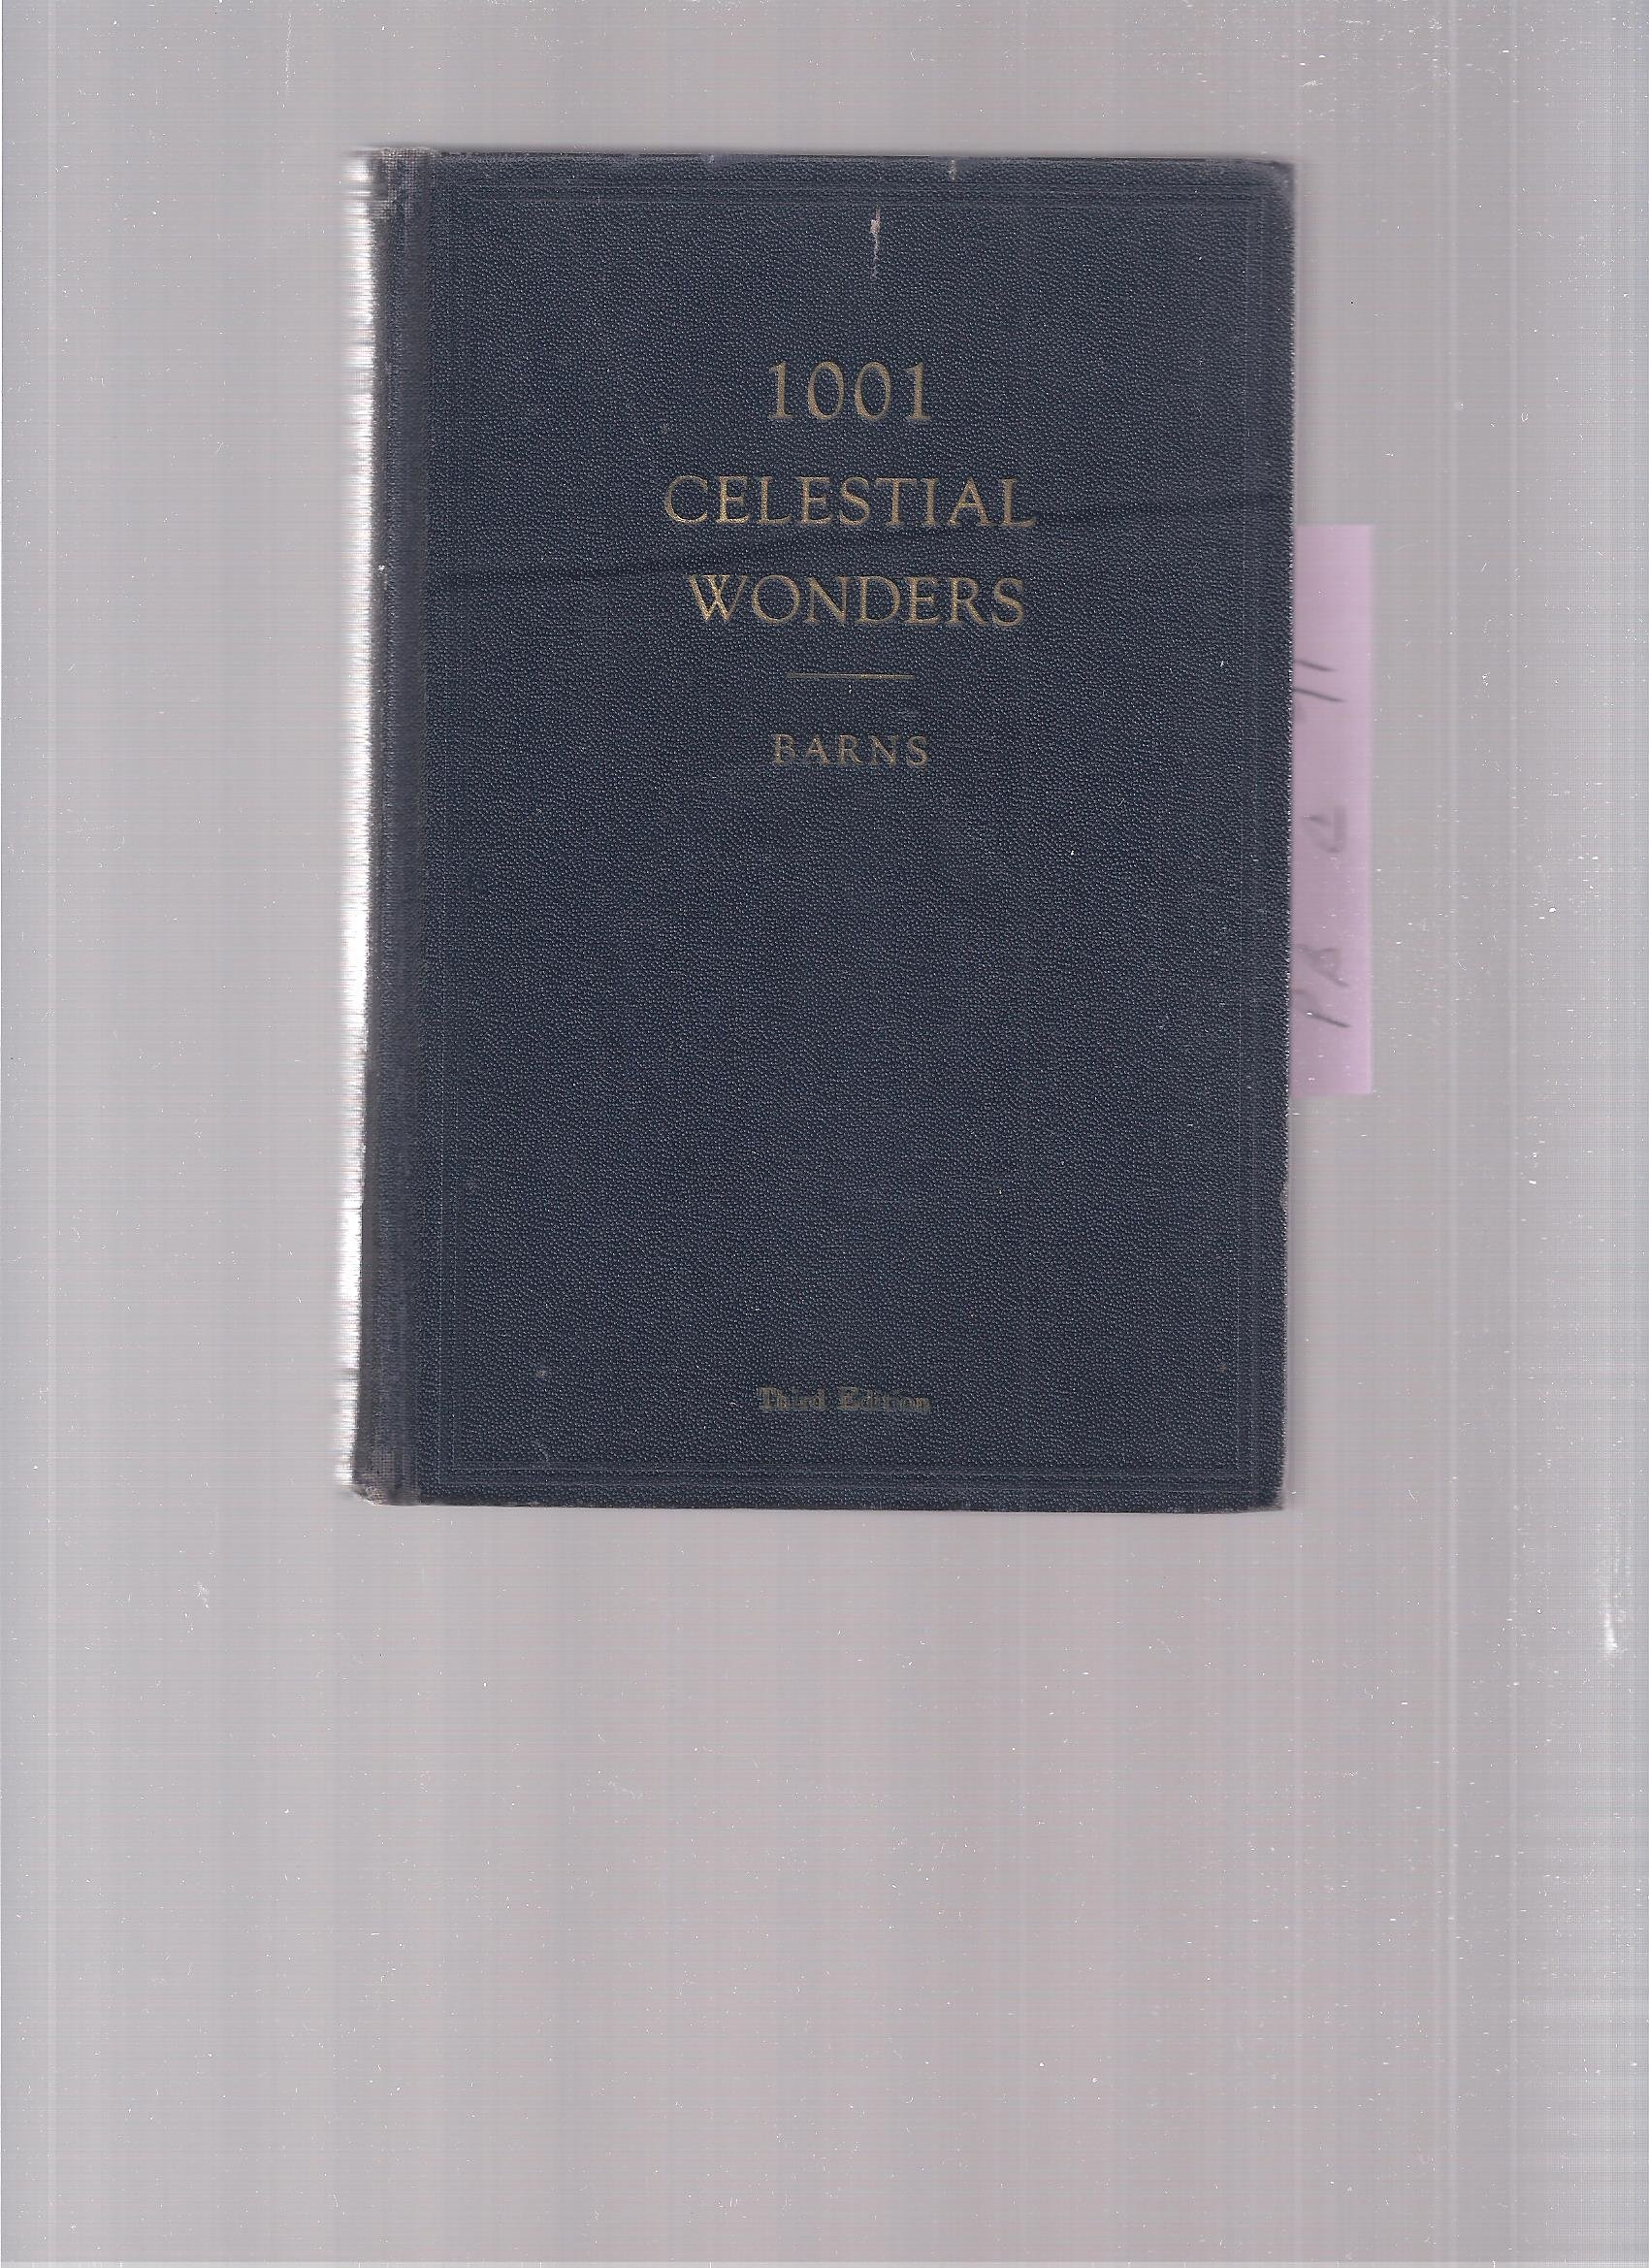 1001 celestial wonders as observed with home-built instruments: Charles  Edward Barns: Amazon.com: Books